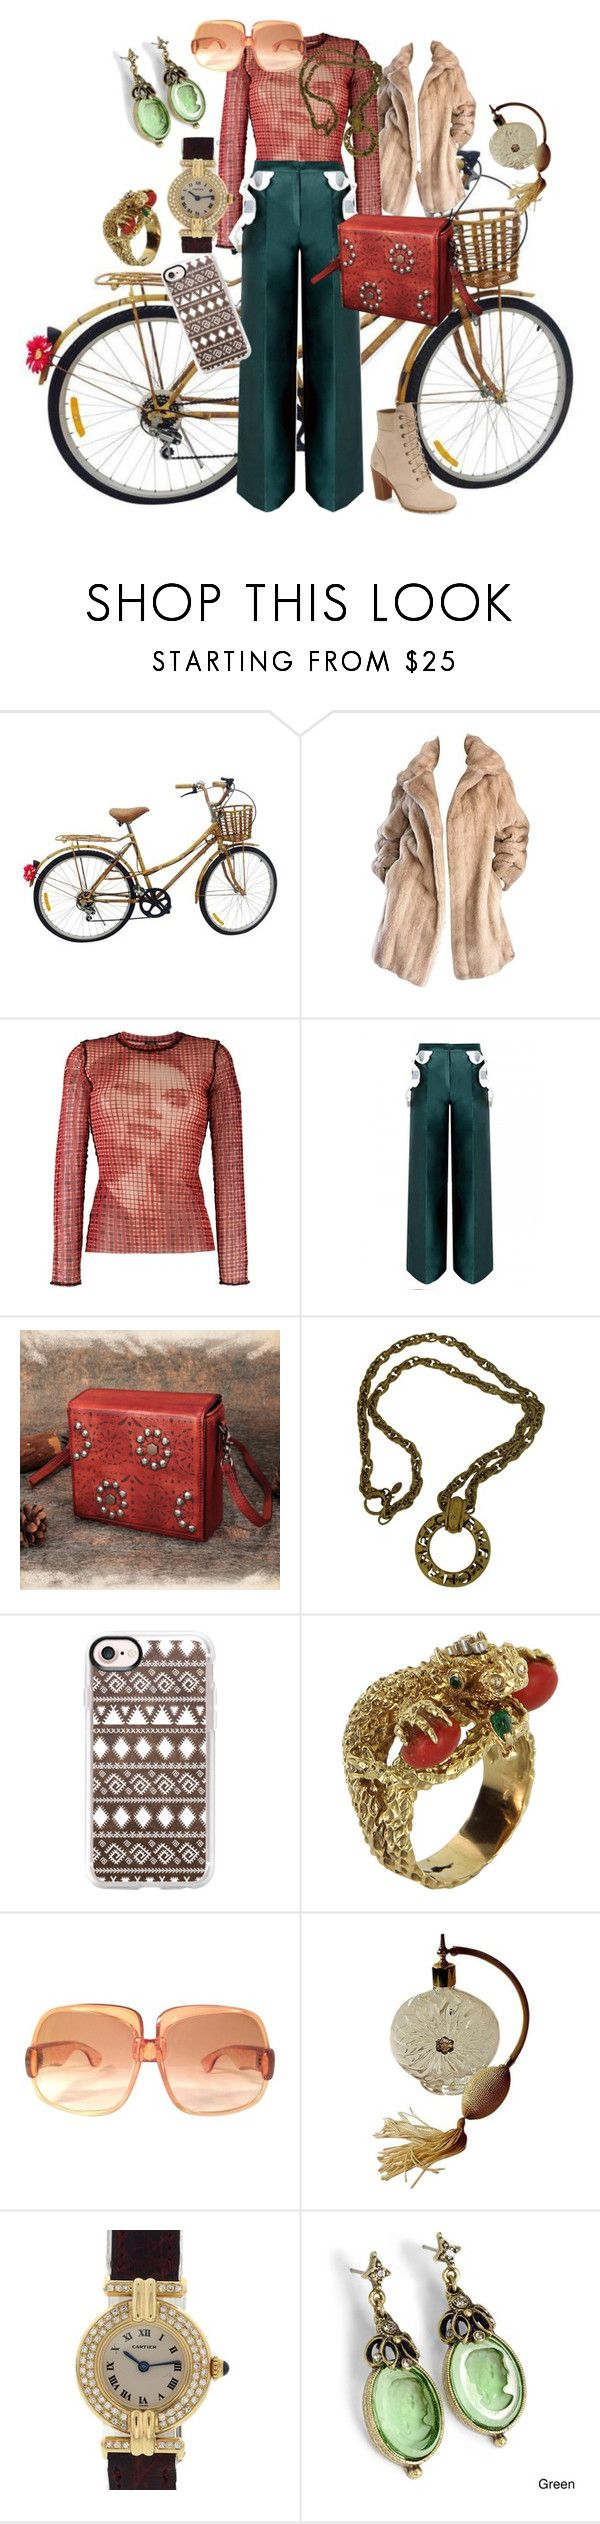 """""""A quirky kind of vintage"""" by tamarilloh ❤ liked on Polyvore featuring Lilli Ann, Jean-Paul Gaultier, Chanel, Casetify, Vintage, Yves Saint Laurent, Cartier, Sweet Romance, Timberland and vintage"""